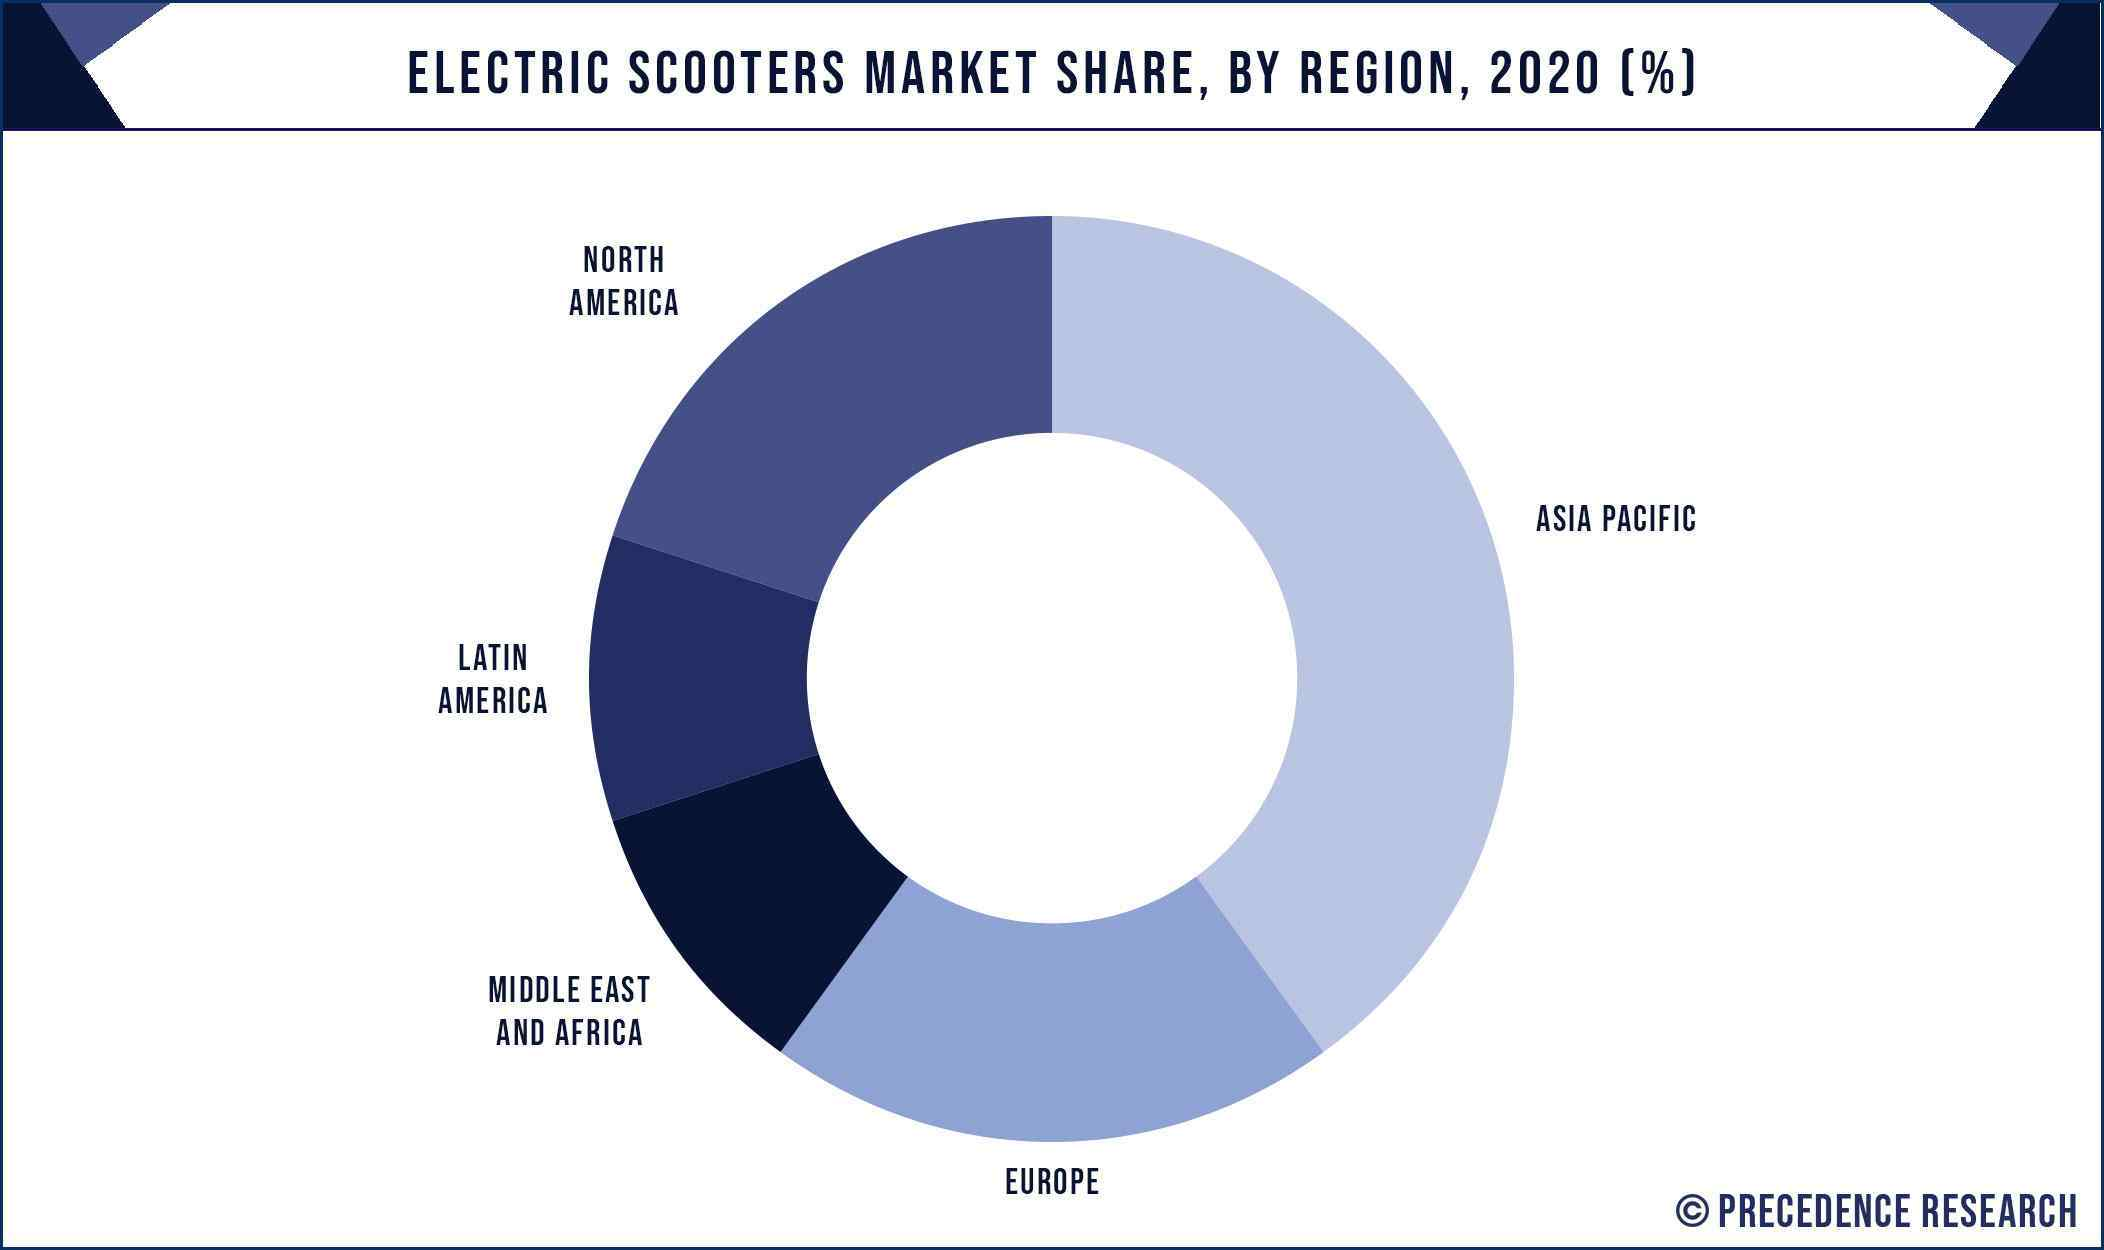 Electric Scooters Market Share, By Region, 2020 (%)